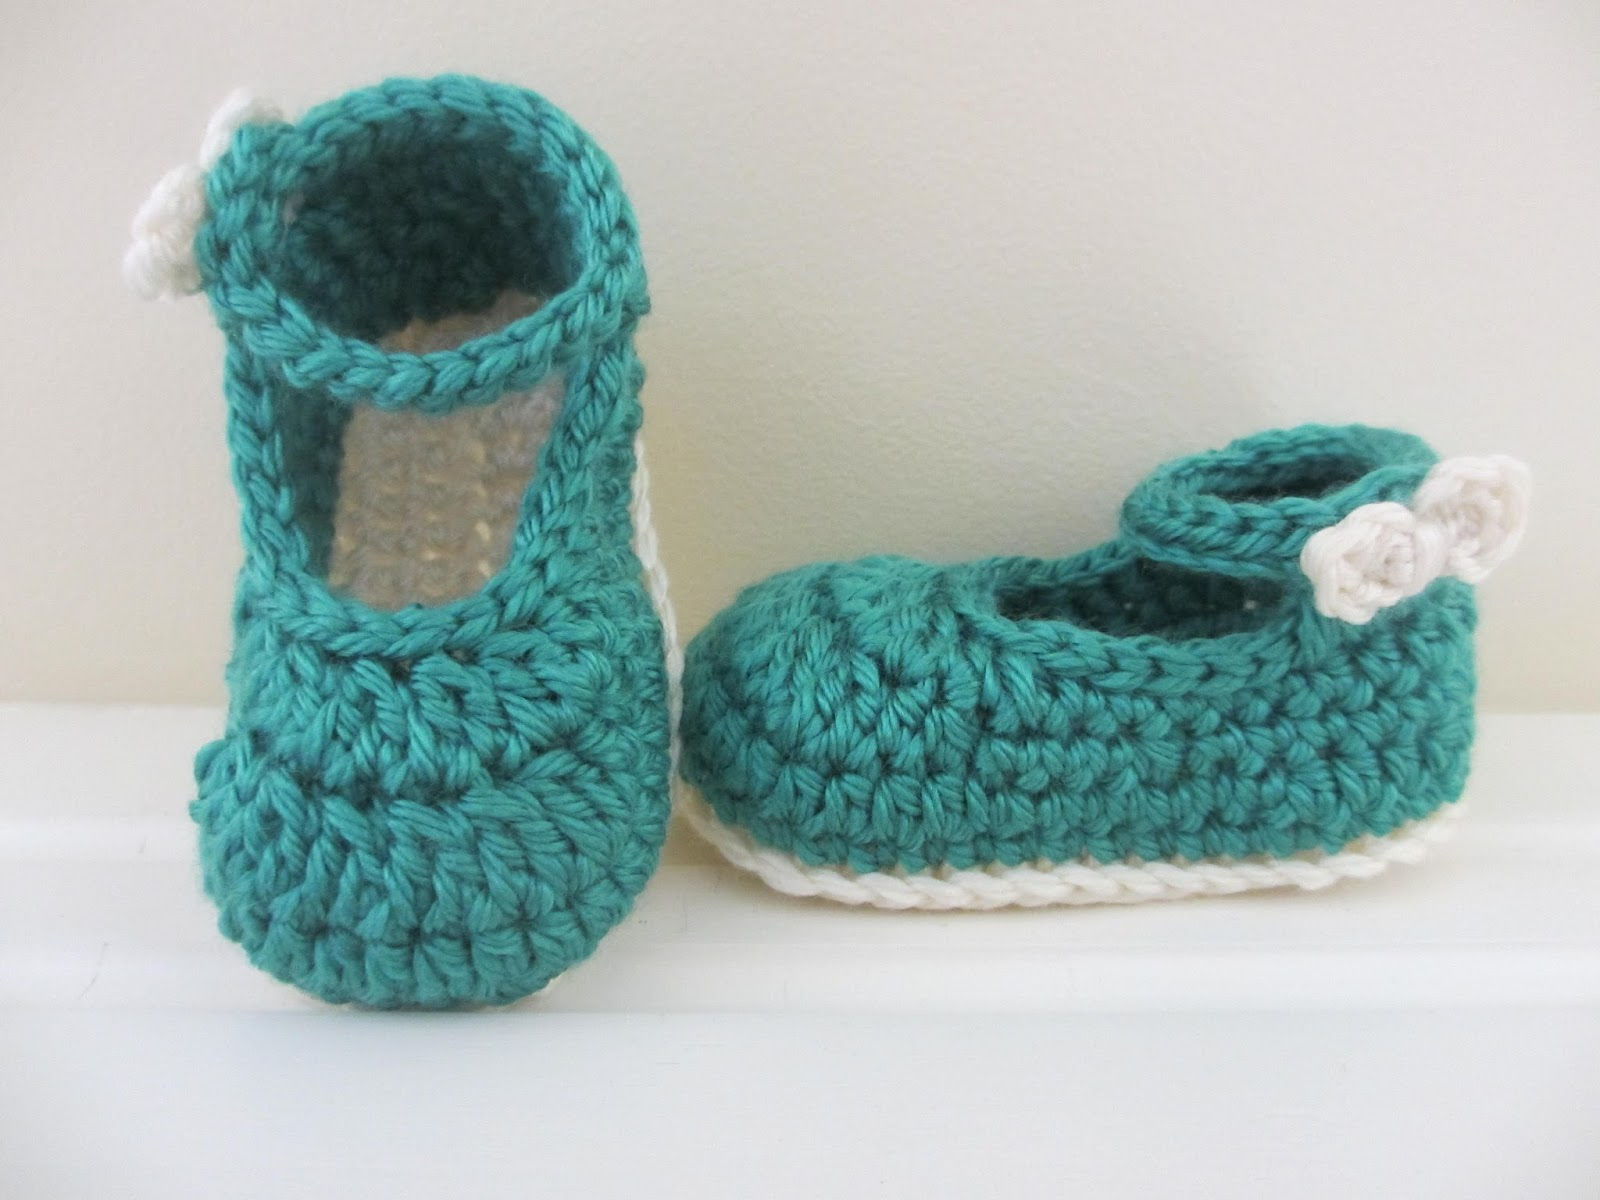 Free Crochet Baby Booties Luxury 40 Adorable and Free Crochet Baby Booties Patterns Of Wonderful 49 Photos Free Crochet Baby Booties